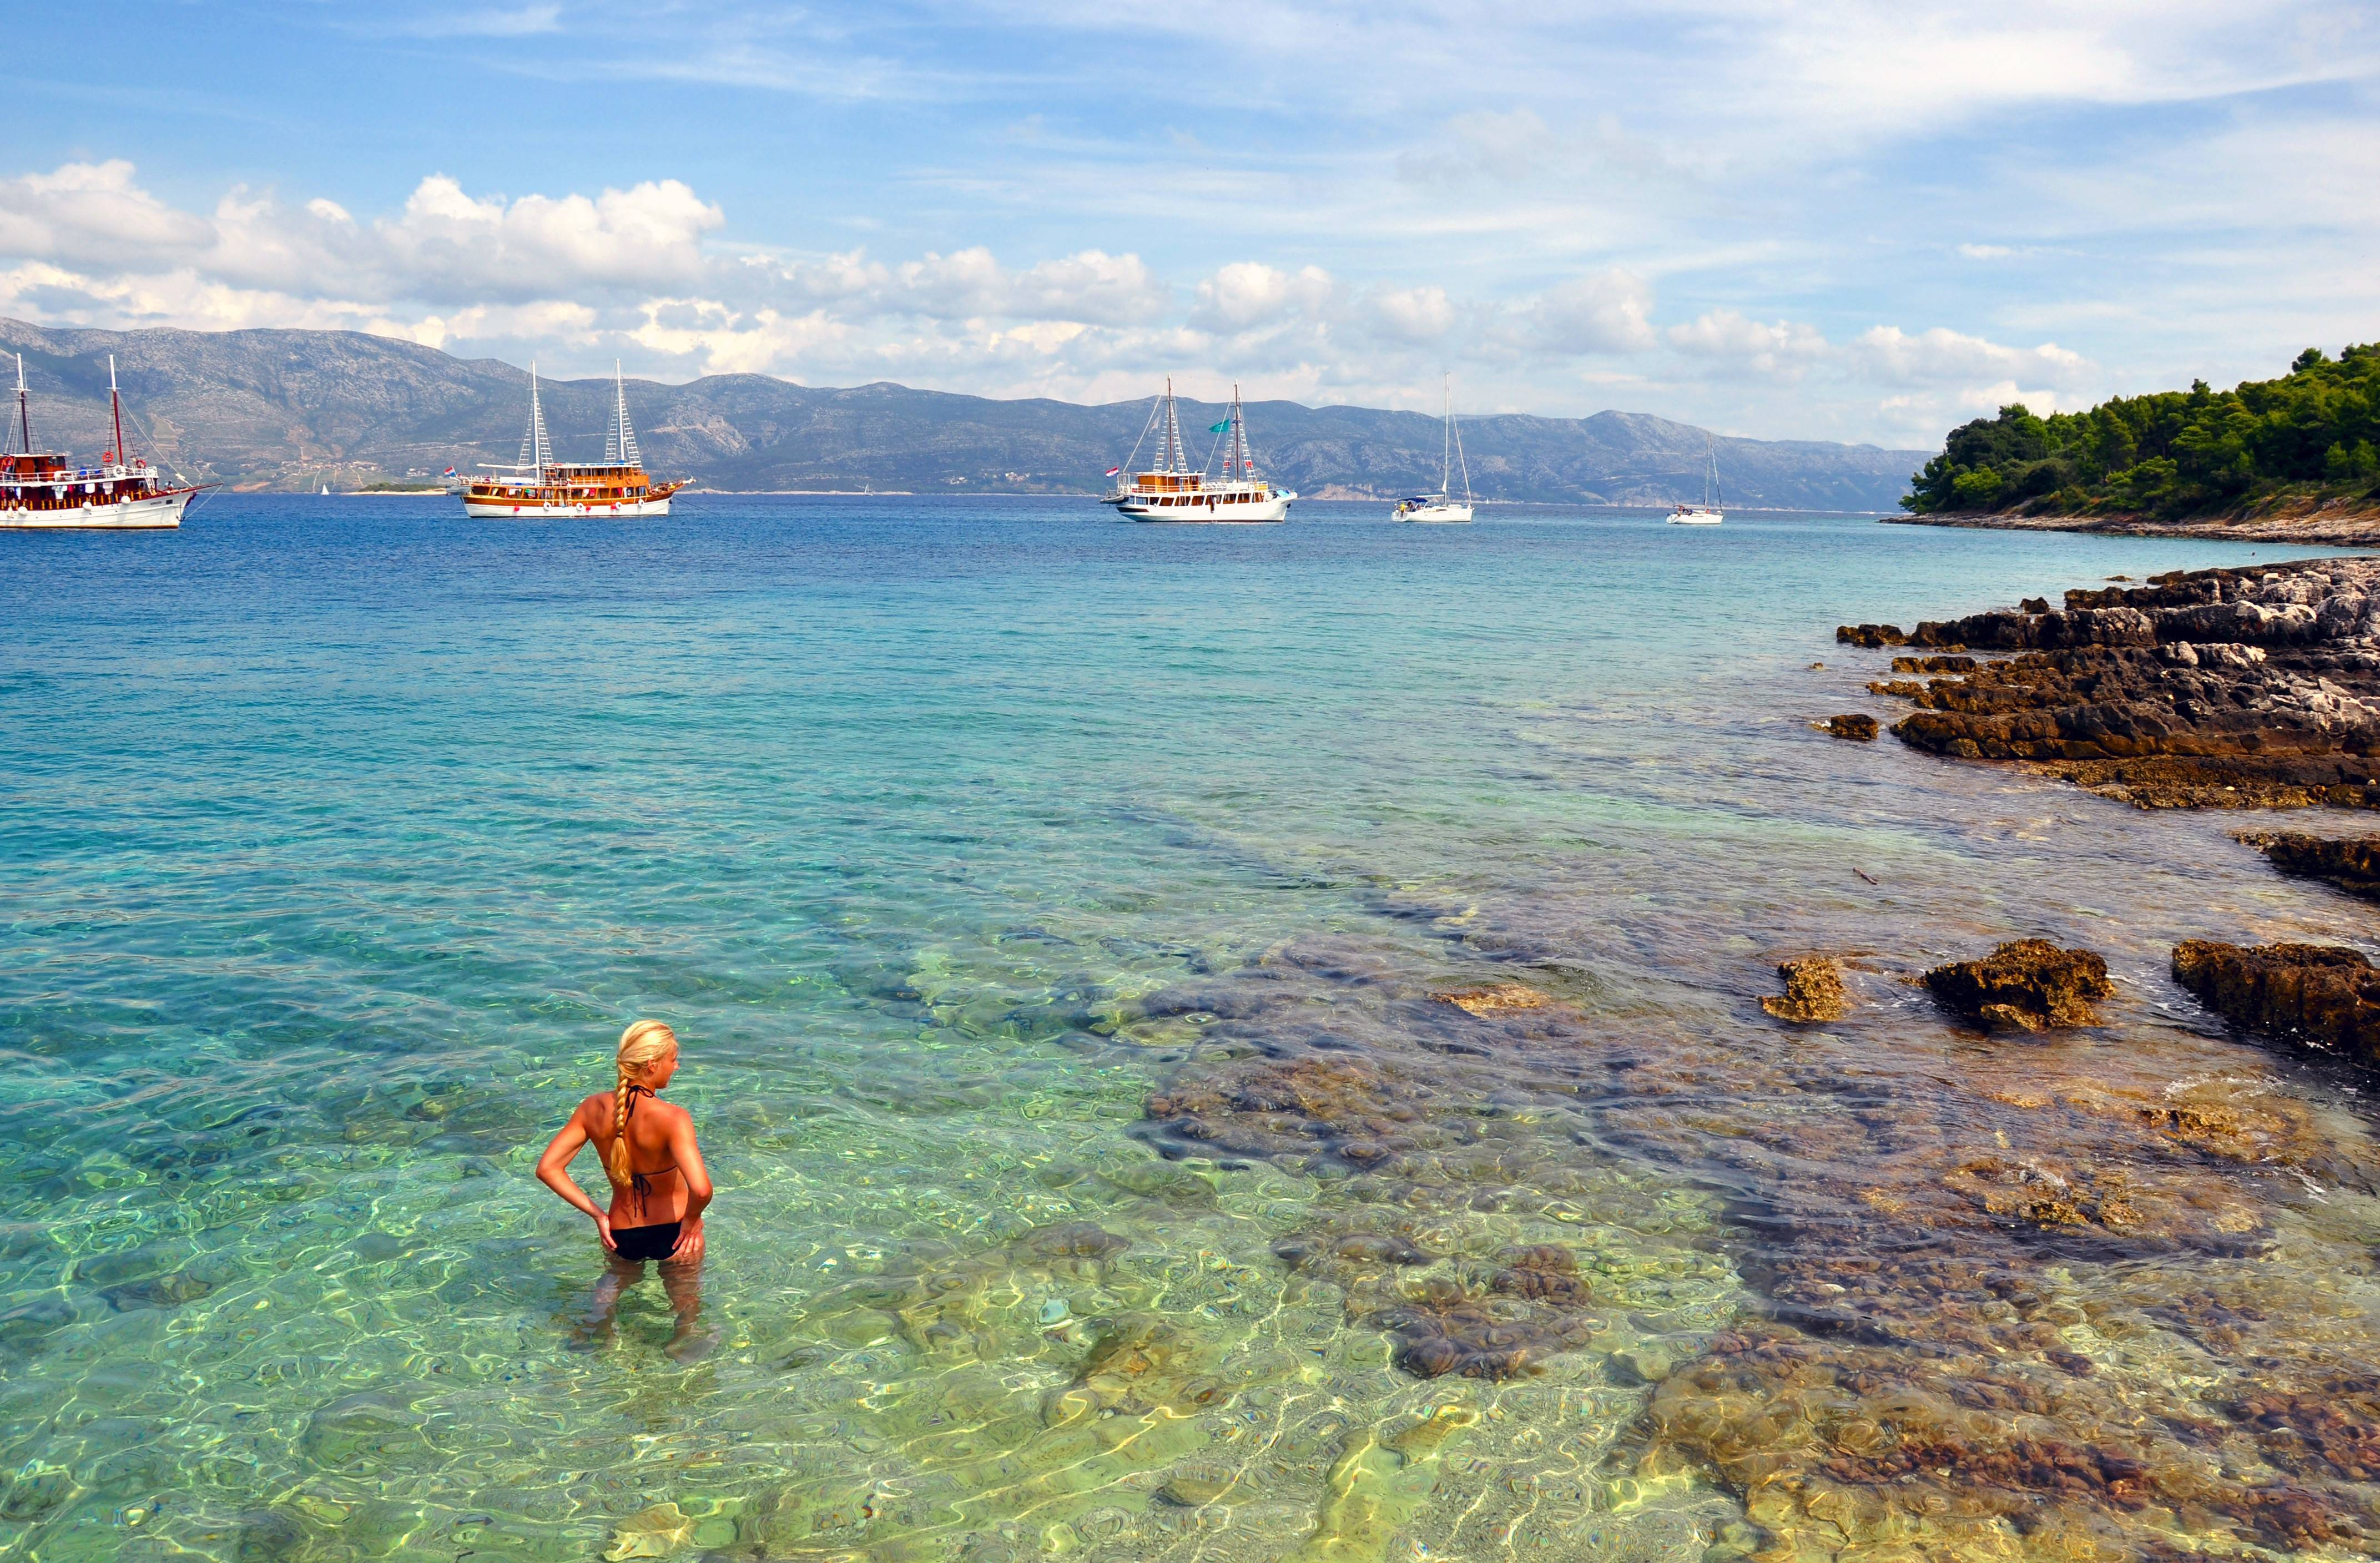 The clear waters off Lumbarda on Korcula Island in Croatia attract swimmers, scuba divers and boaters.